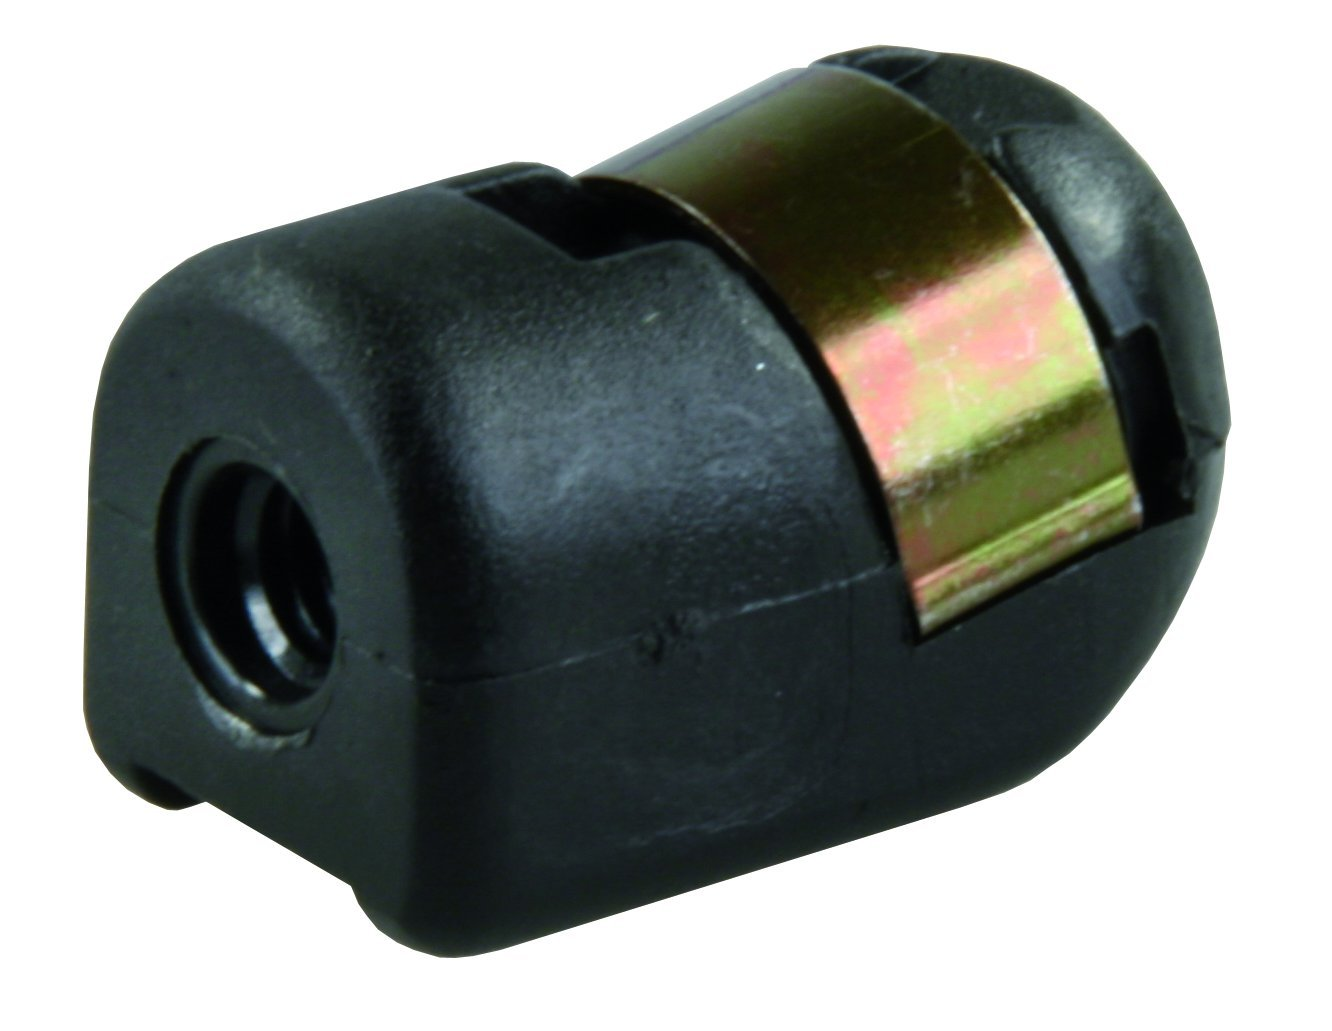 JR Products 10 Millimeter EF-PS90A Replacement End Fittings 2 Pk